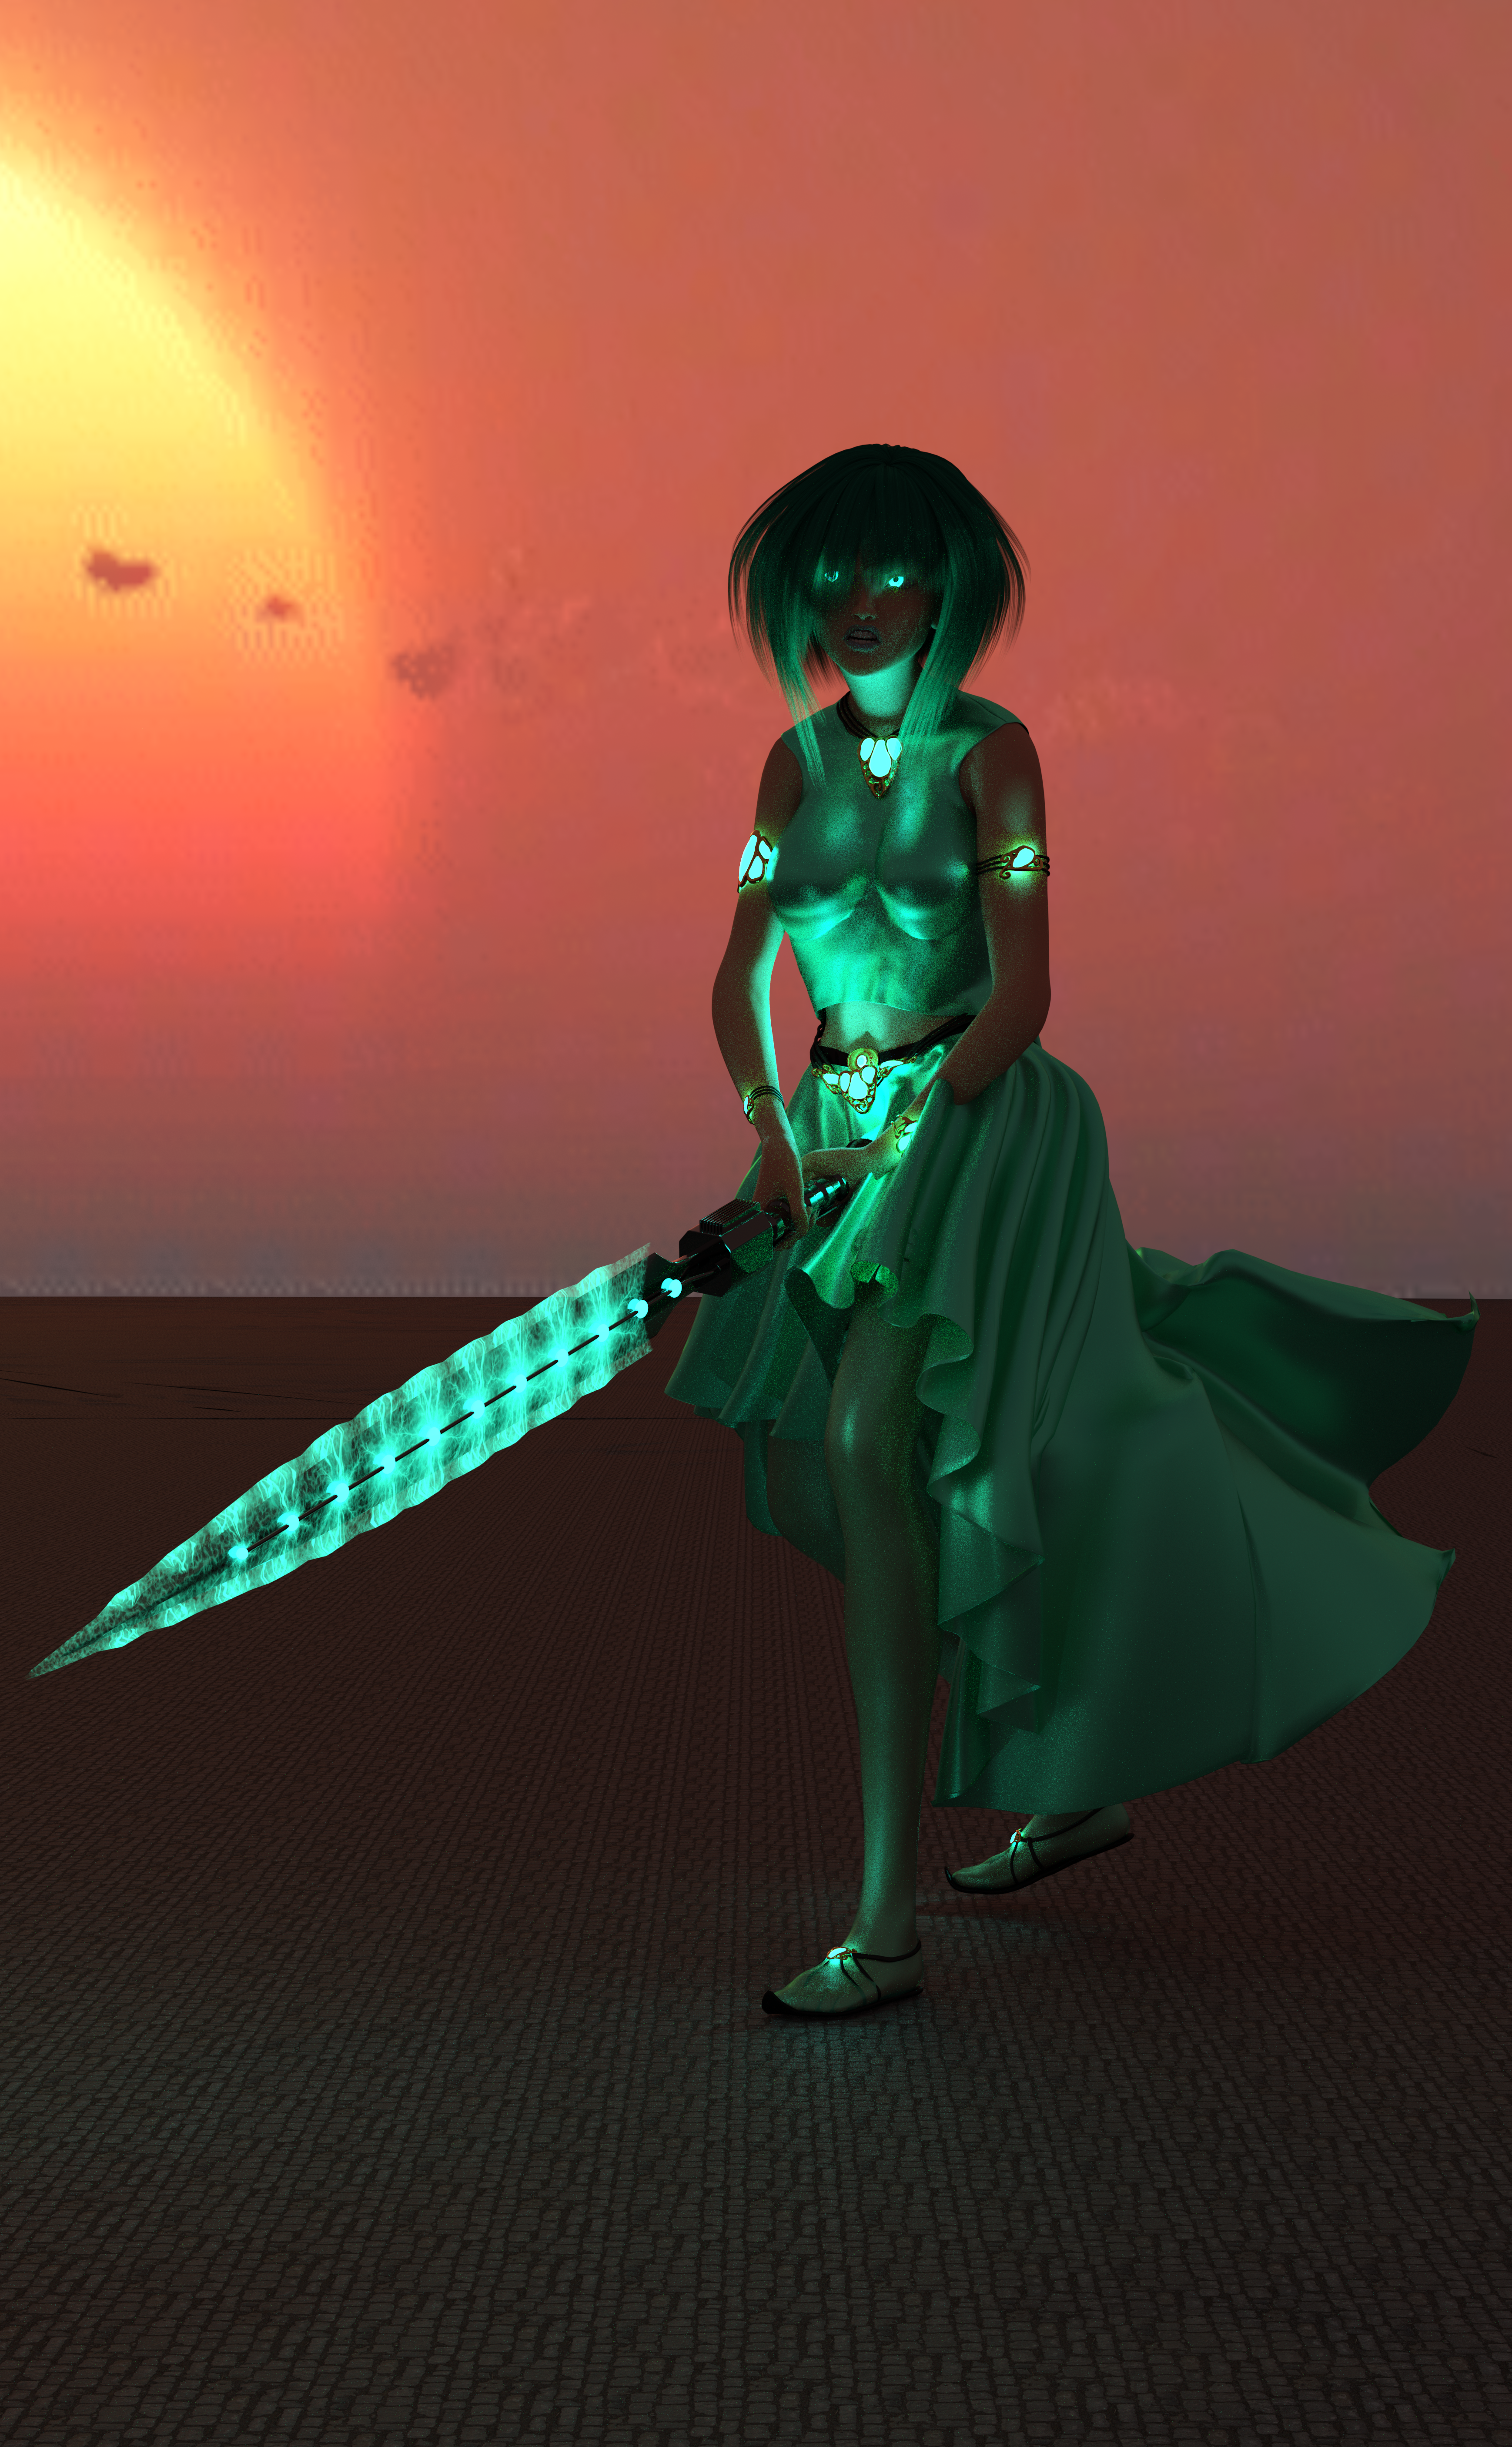 A woman with turquoise clothes, turquoise hair, a sword charged with turquoise magic, and glowing turquoise eyes!